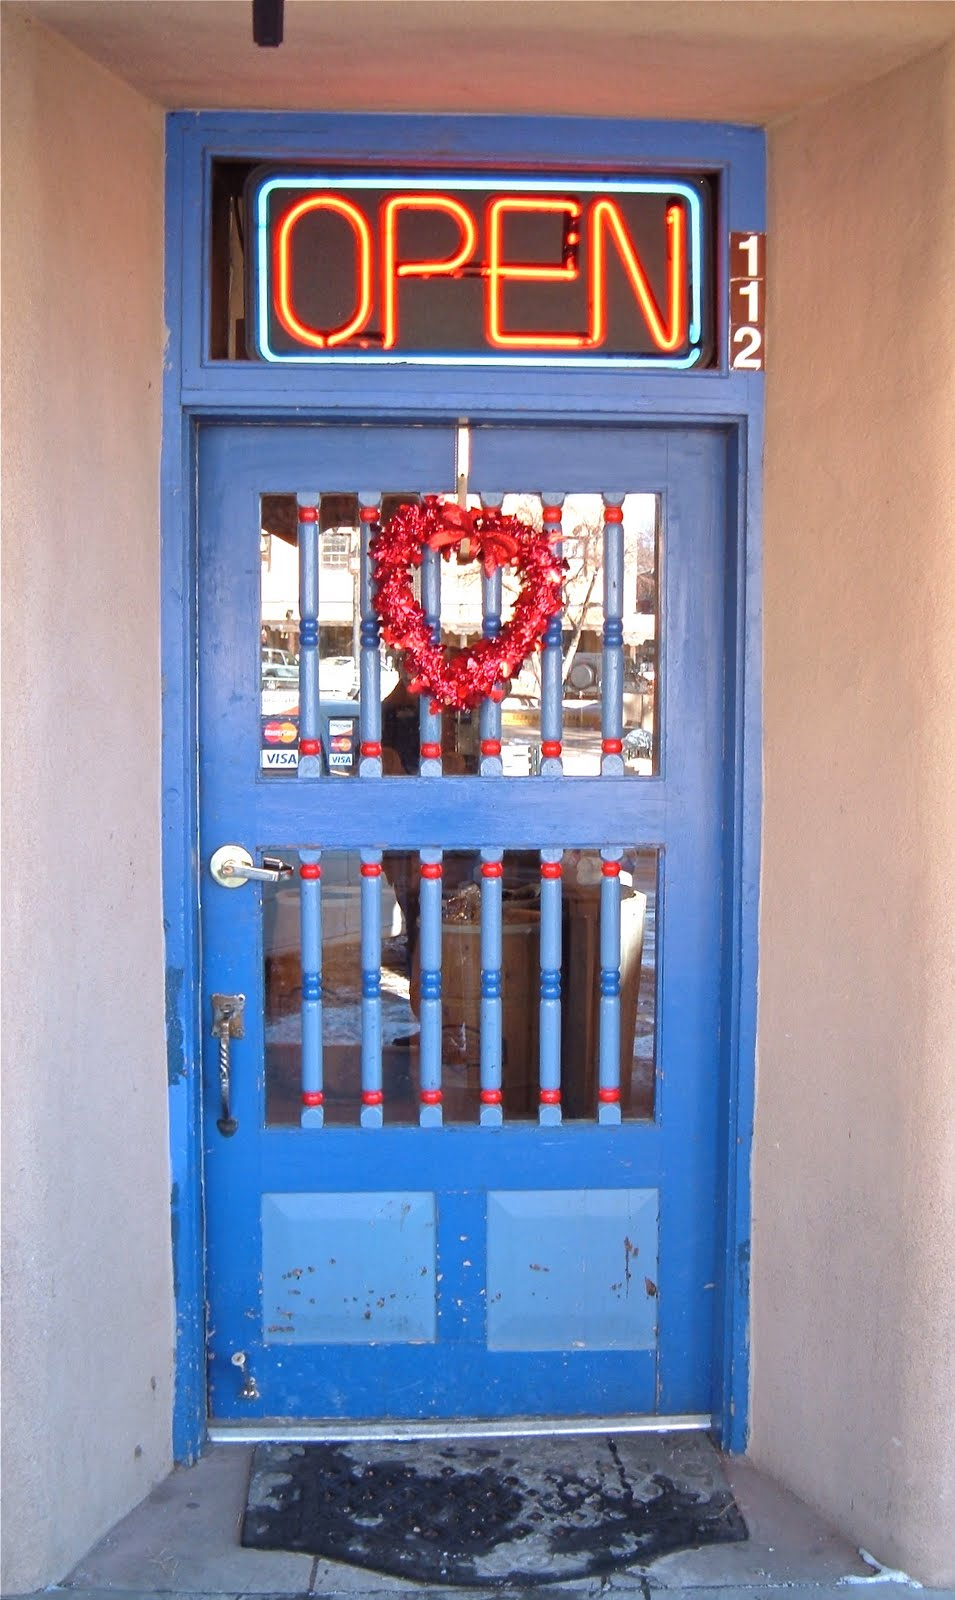 Two Graces Taos \u201cThe Secret of Taos Blue Doors\u201d Robert Cafazzo (copyright 2011) & Two Graces Taos: \u201cThe Secret of Taos Blue Doors\u201d Robert Cafazzo ...